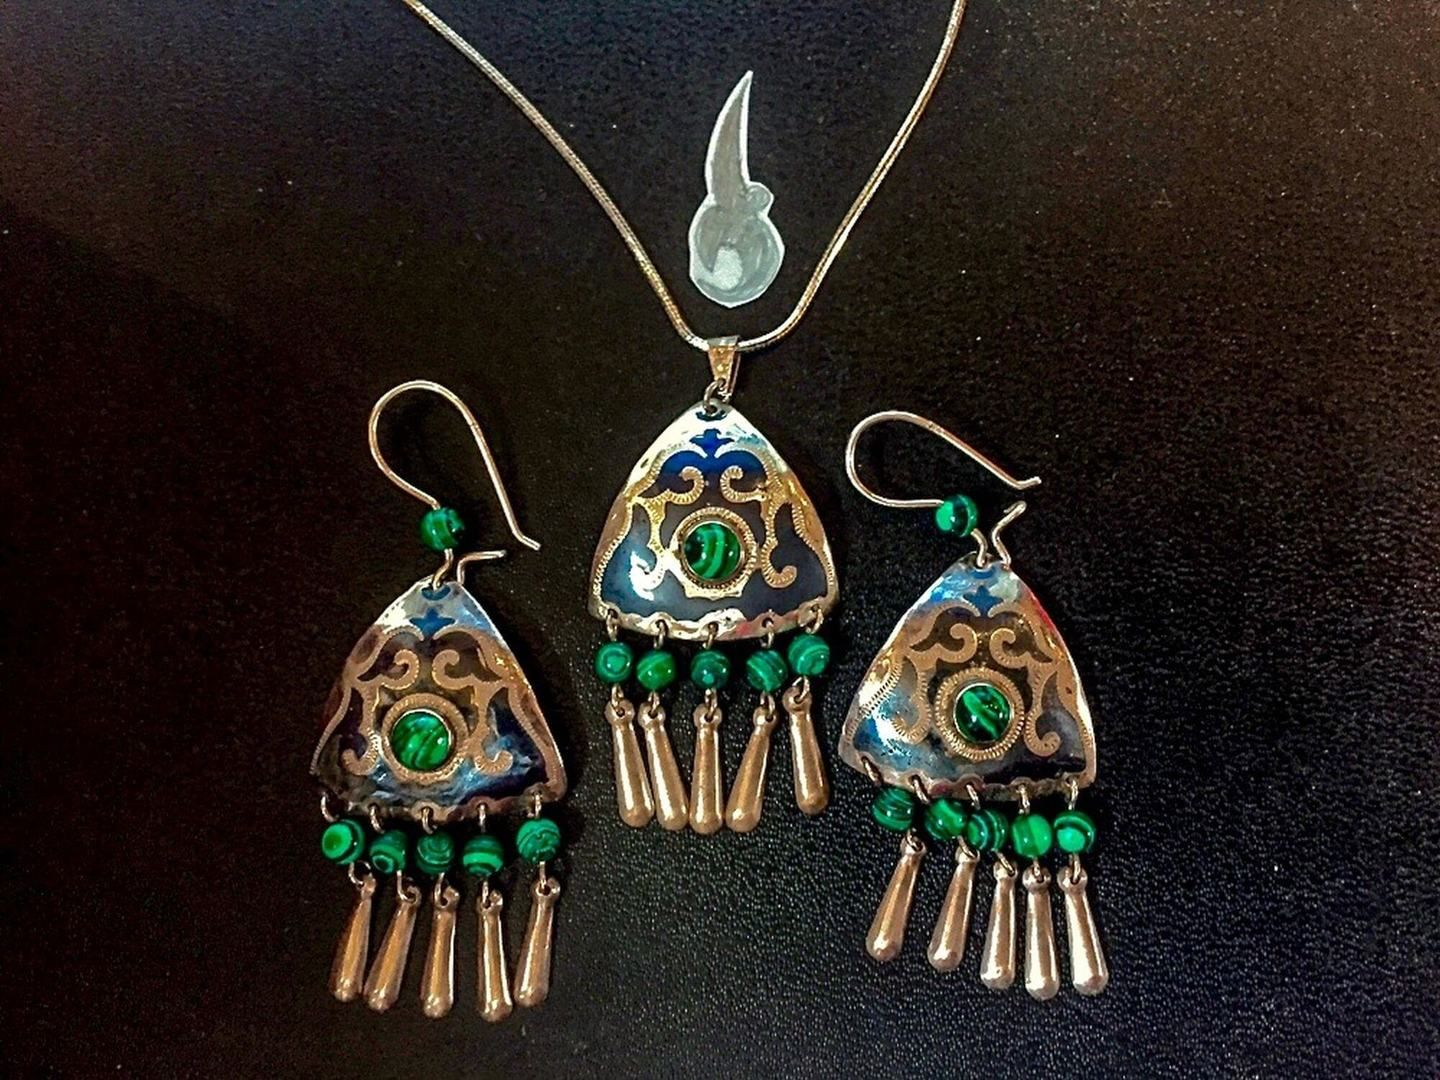 Central Asia Ornaments, earrings